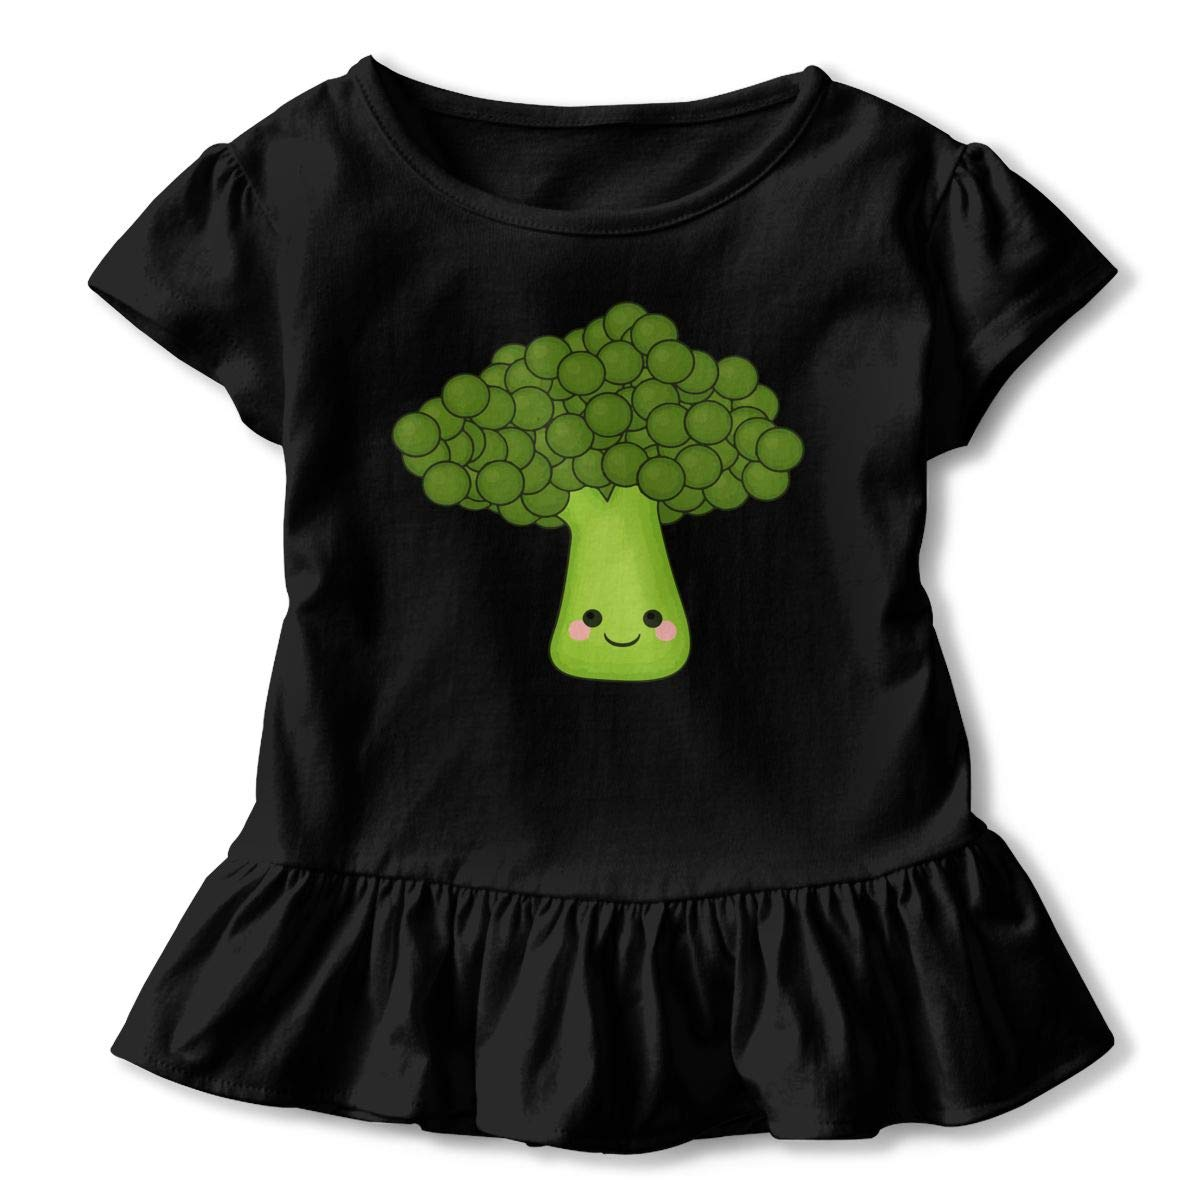 Cute Broccoli Baby Girls Short Sleeve Ruffles T-Shirt Tops 2-Pack Cotton Tee